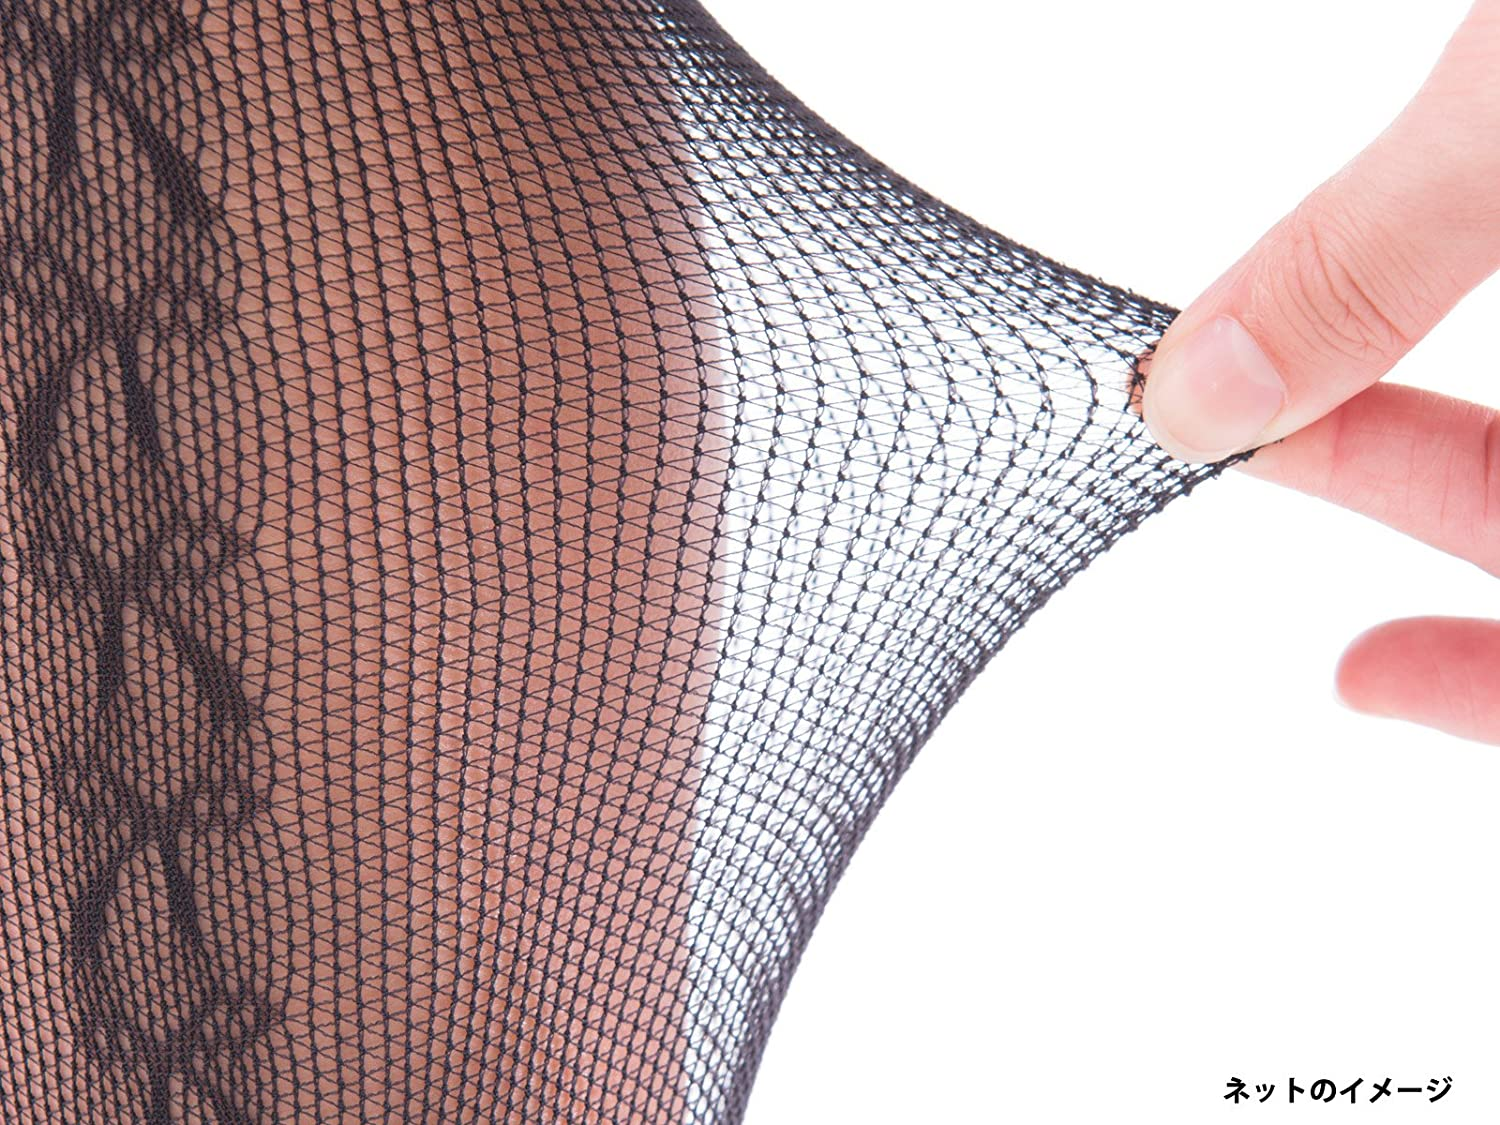 32c275dd1 Amazon.com  FUN fun lace fishnet tights(Ribbon pattern at side) Kids Girls  Dress Party stockings Black 34-53inch  Clothing